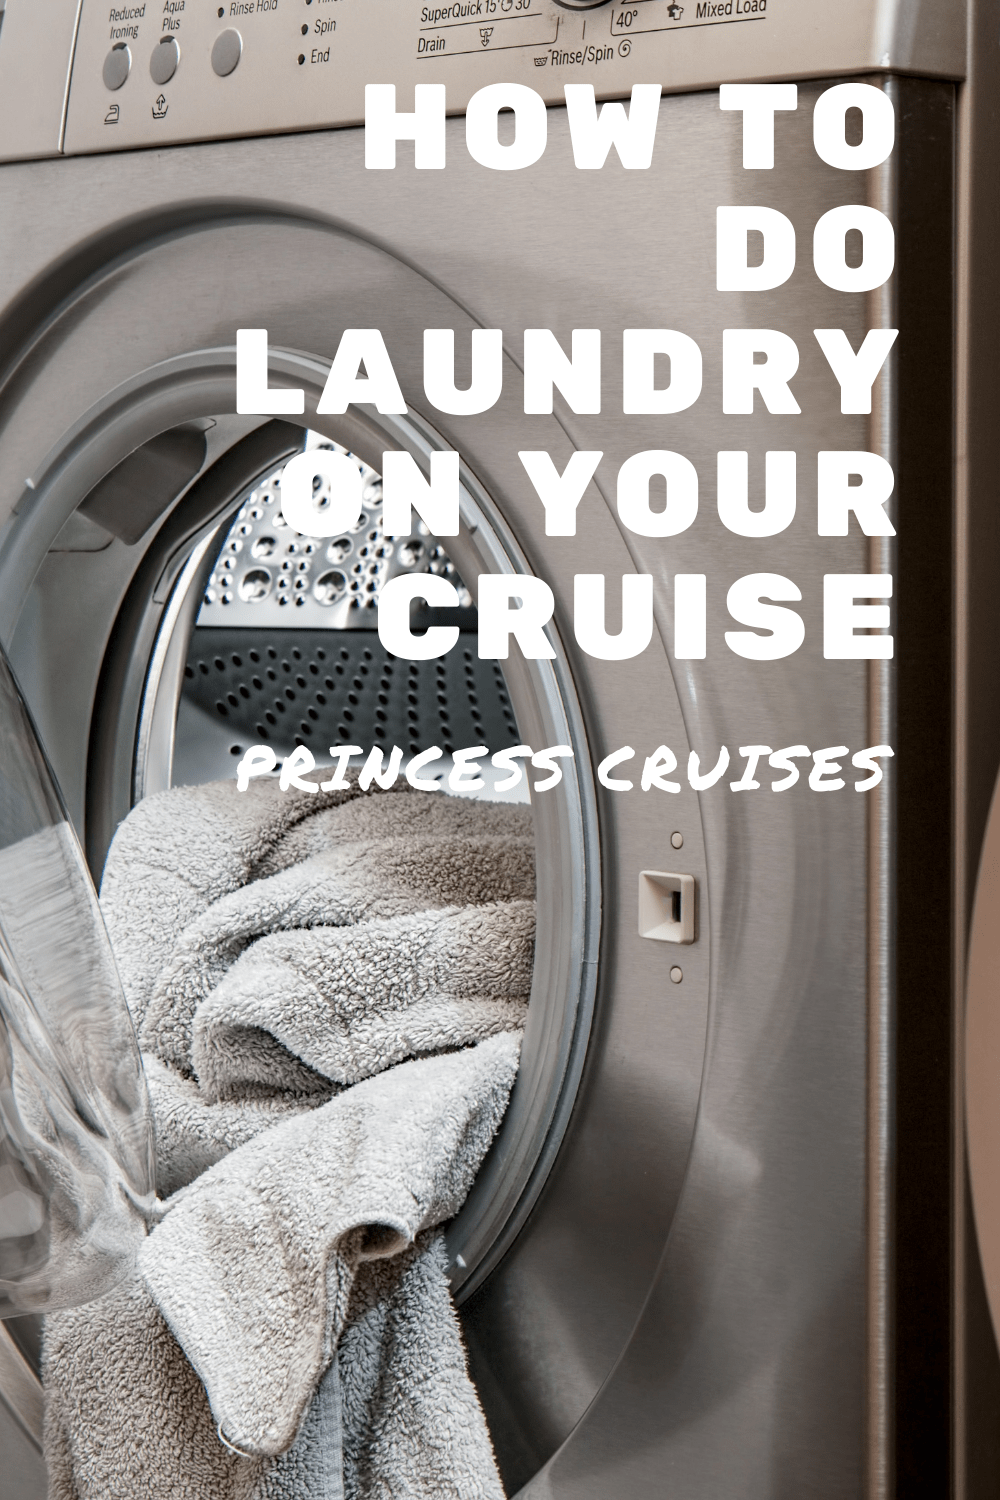 The complete guide to Princess Cruises laundry services, including tips and tricks about how onboard self-service launderettes work.